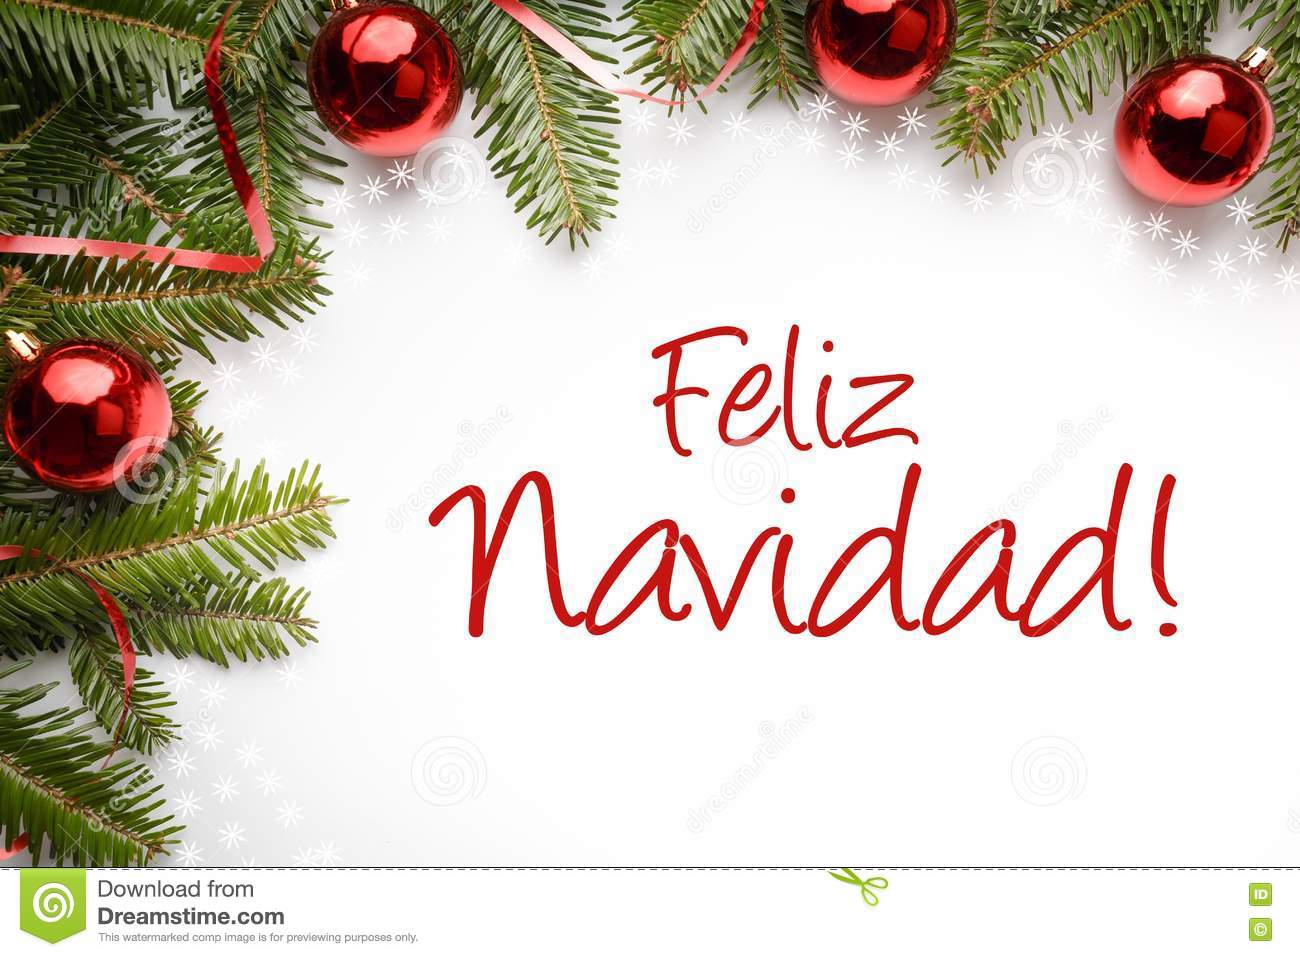 christmas decorations with christmas greeting in spanish feliz navidad merry christmas royalty